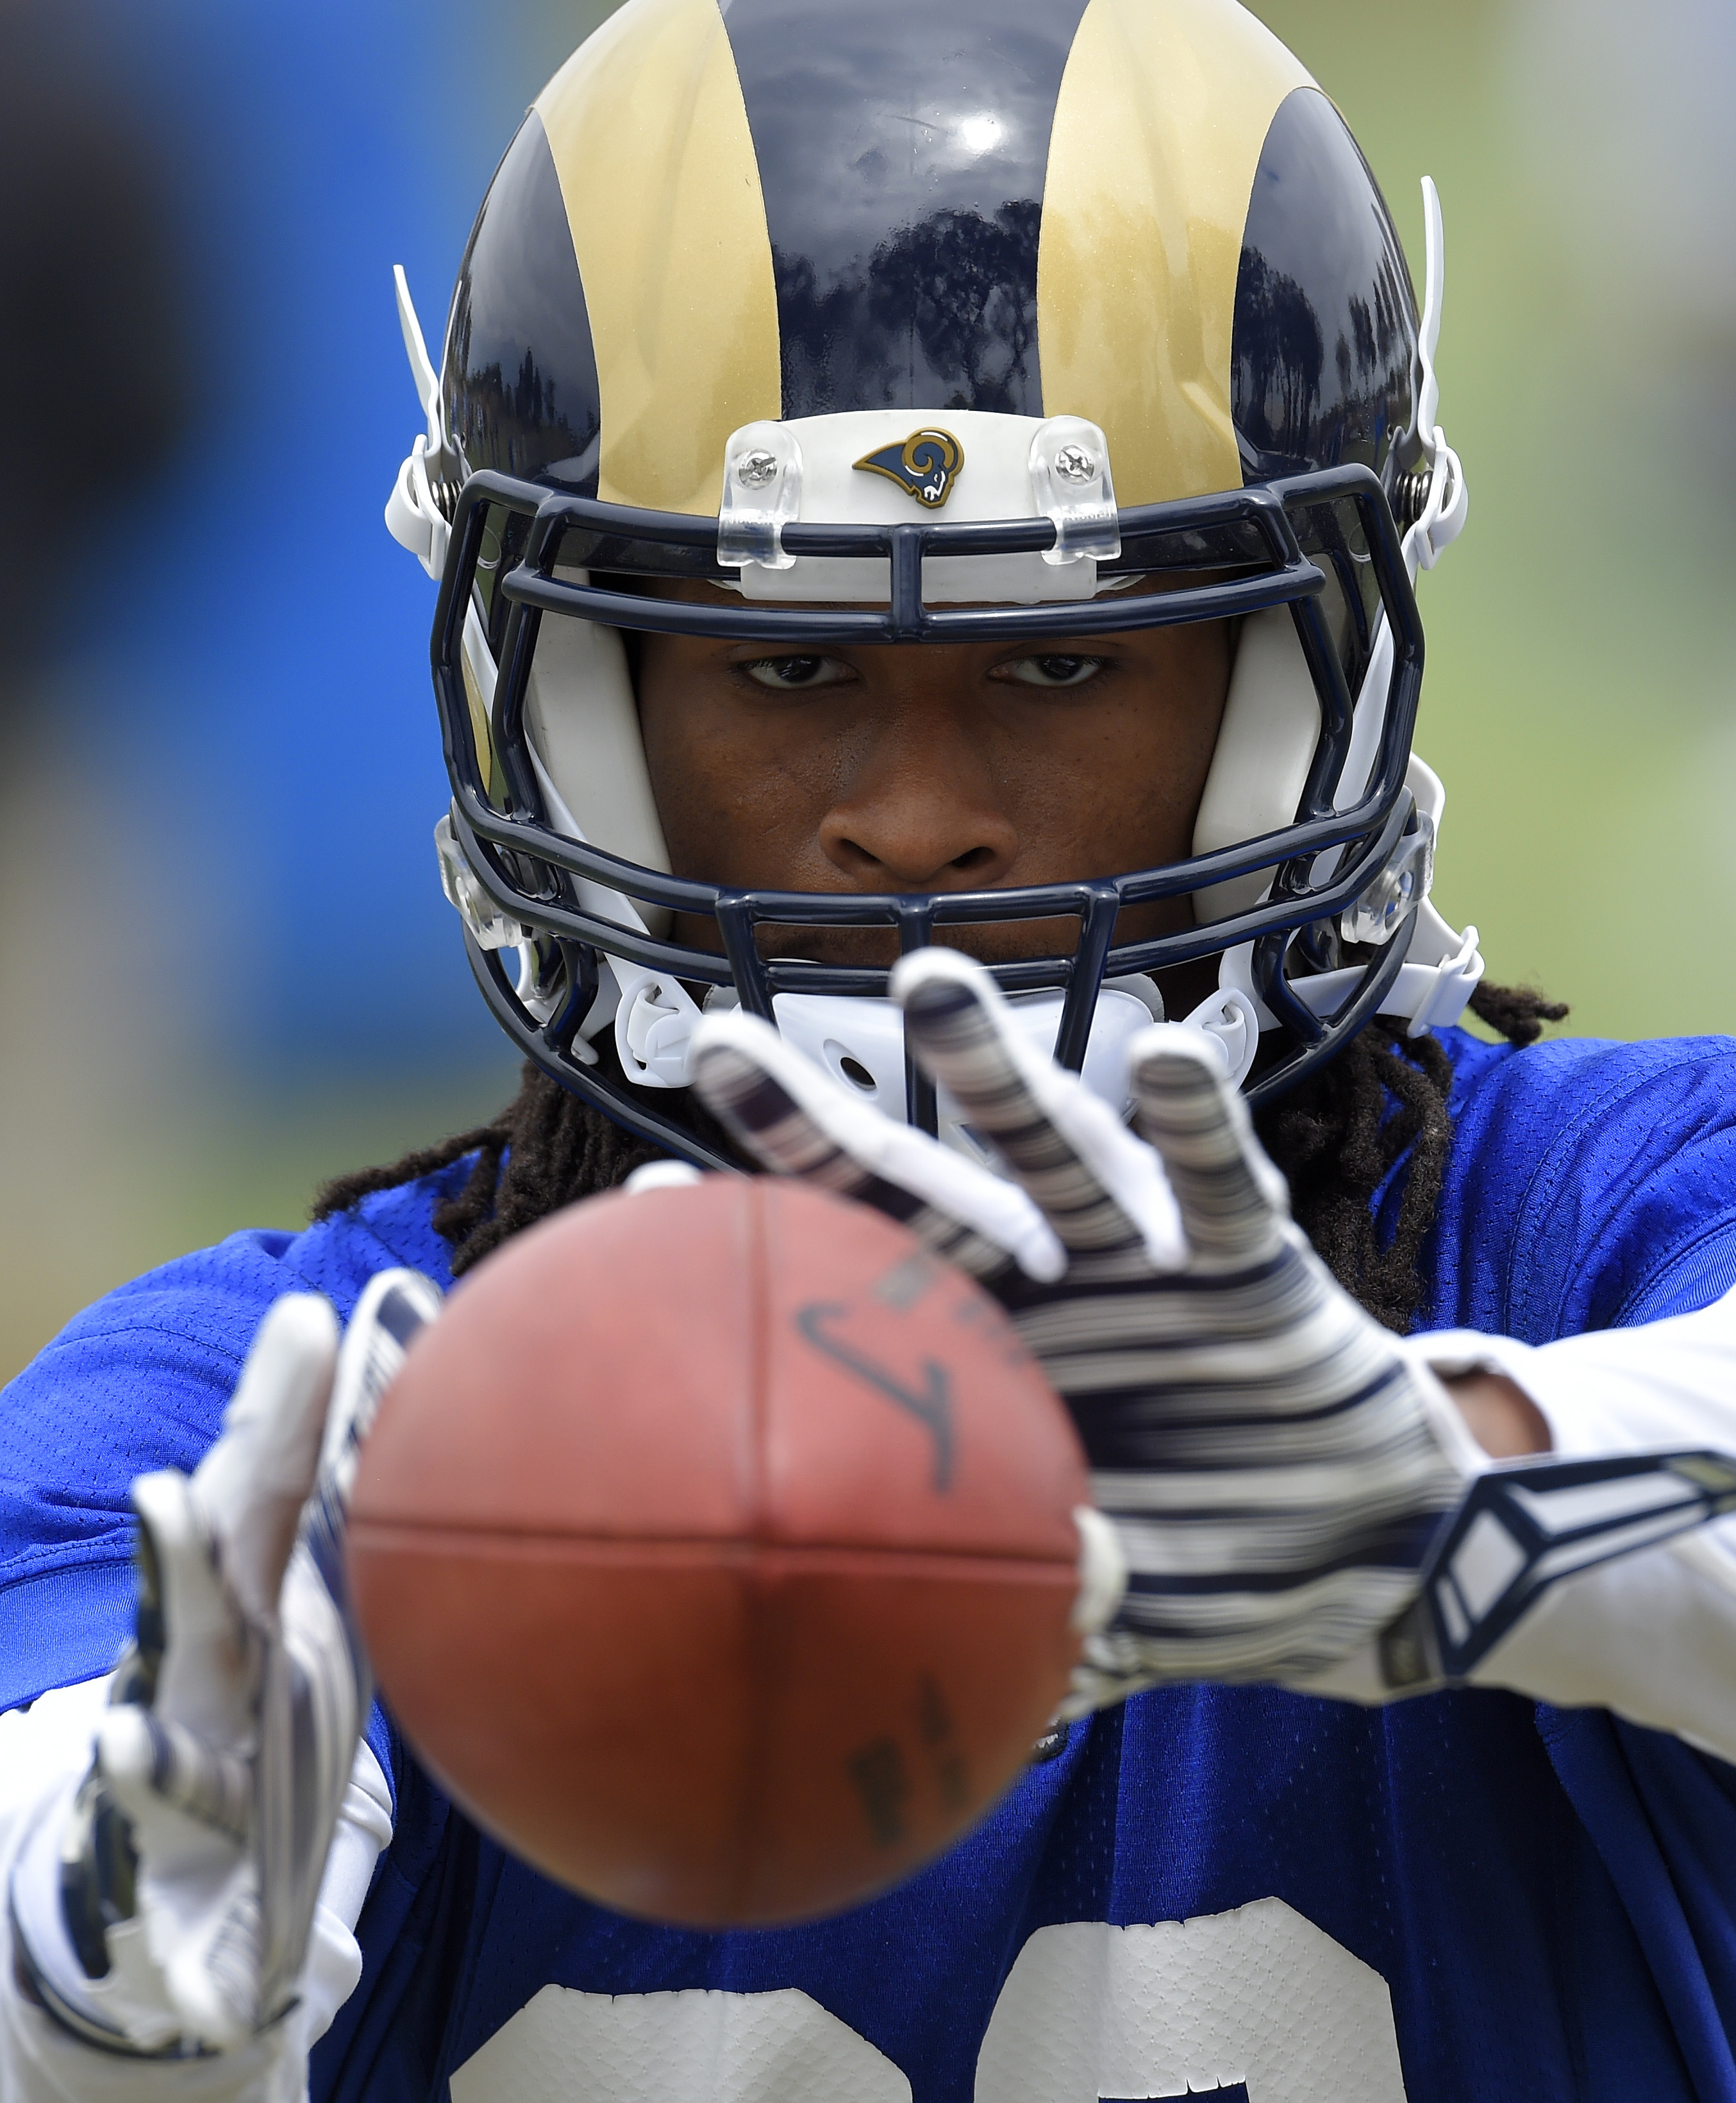 FILE - In this June 1, 2016, file photo, Los Angeles Rams running back Todd Gurley catches passes from a machine during NFL football practice in Oxnard, Calif.  In the first few months since the Rams went Hollywood, Todd Gurley has already landed commerci